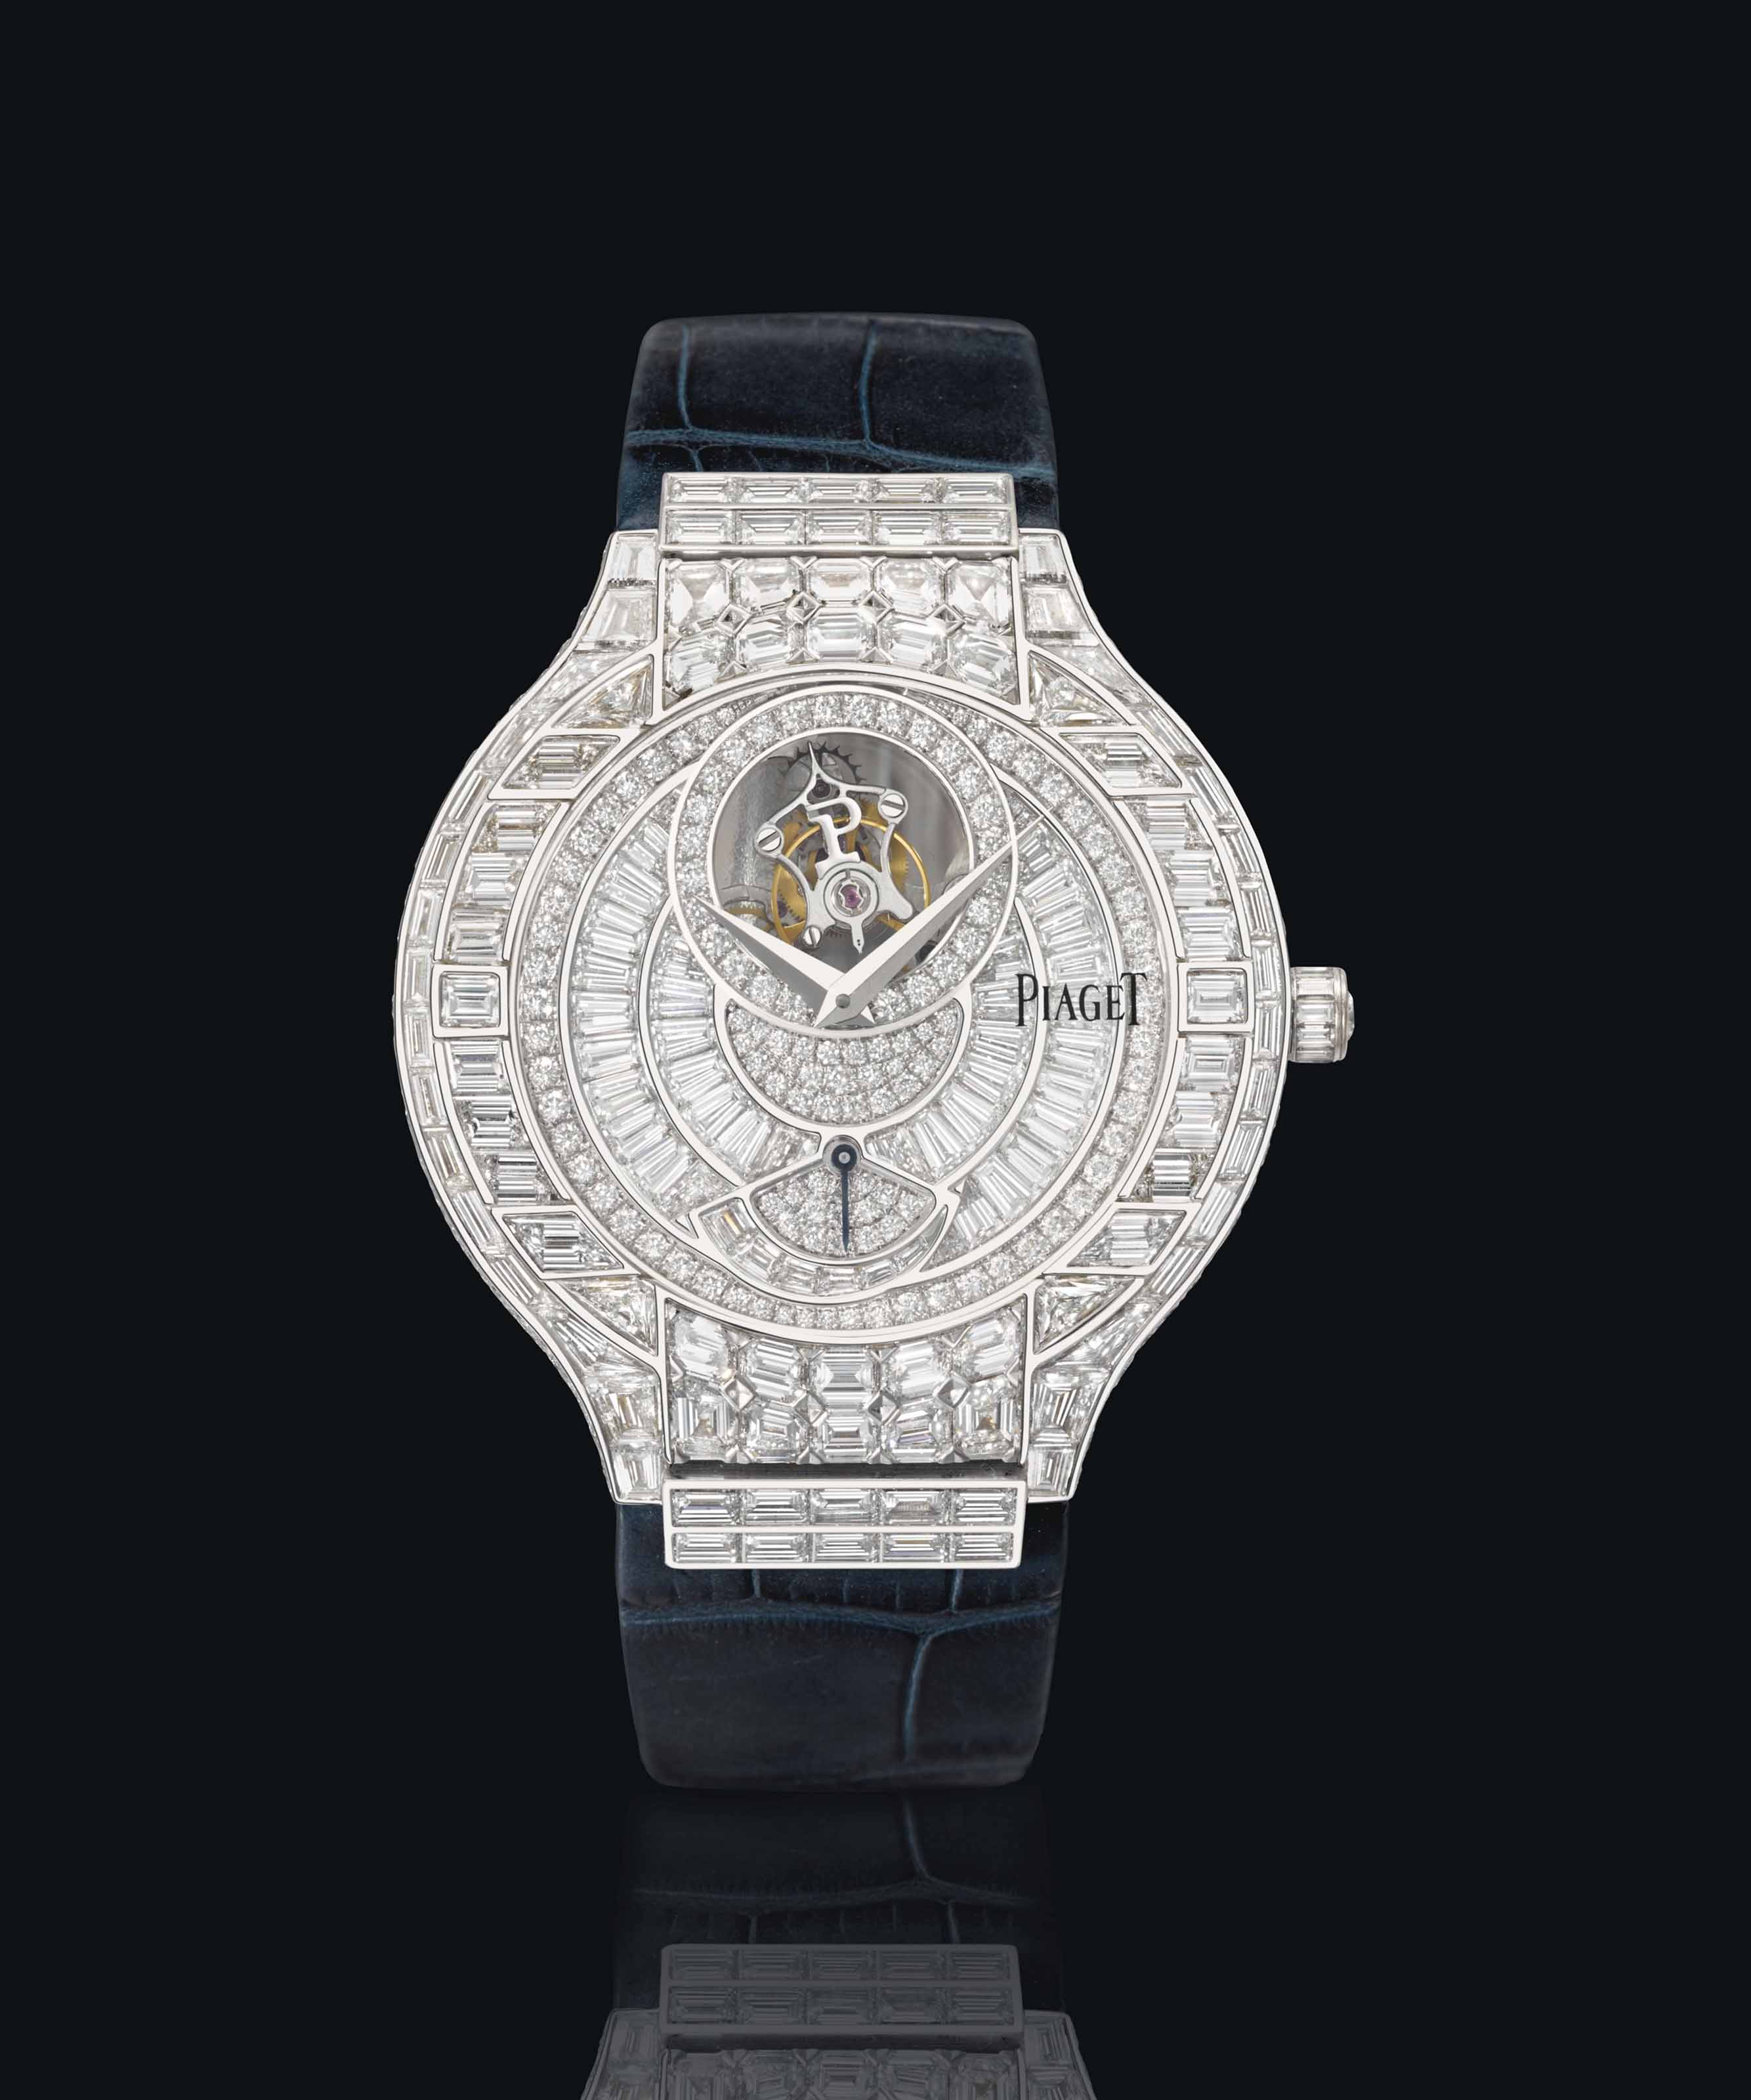 Piaget. An exceptional 18K white gold and diamond-set wristwatch with one minute flying tourbillon, power reserve, certificate and boxes